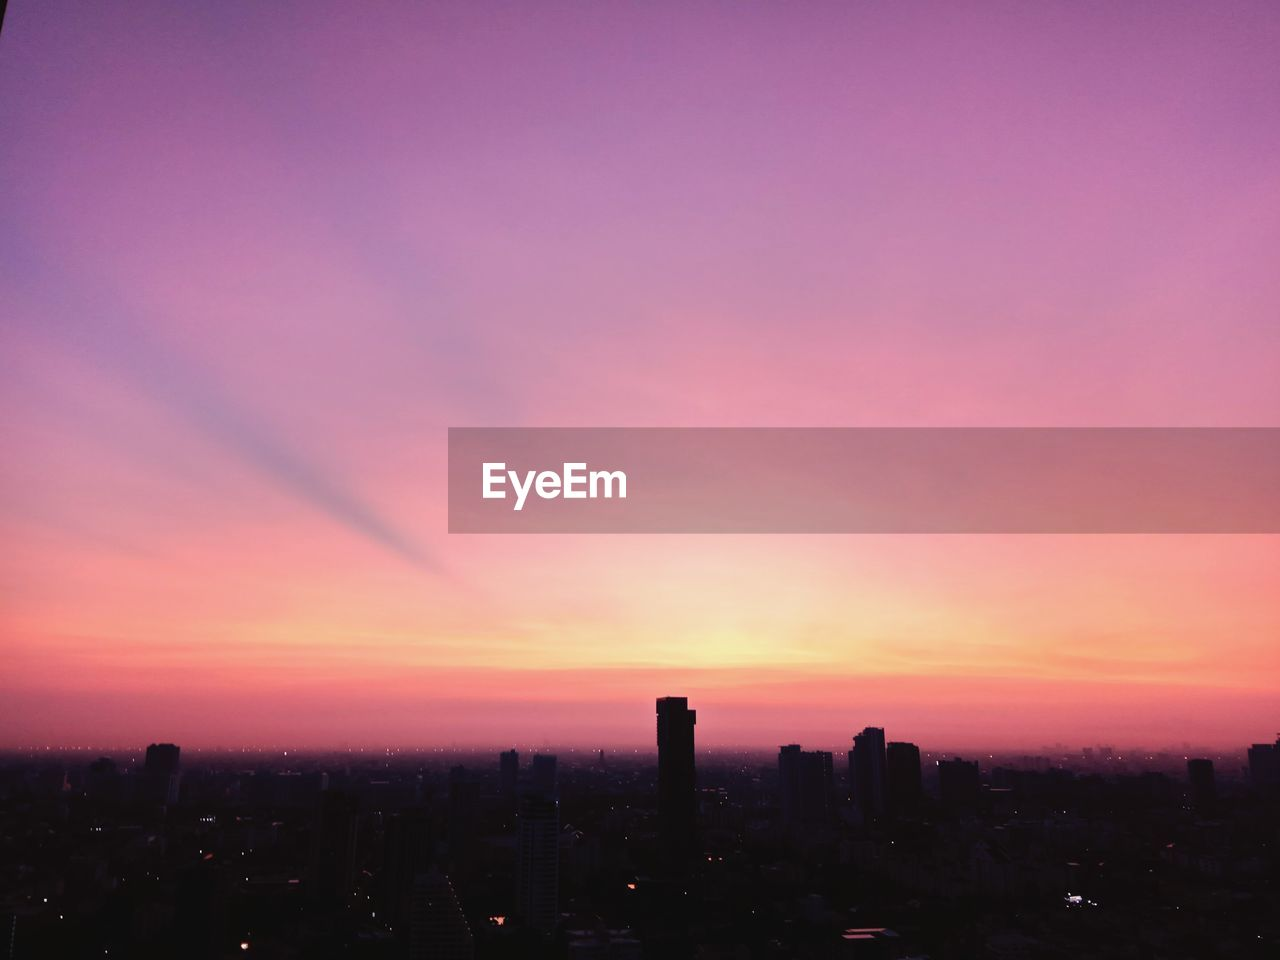 skyscraper, sunset, cityscape, architecture, city, building exterior, development, skyline, modern, no people, built structure, growth, urban skyline, sky, tall, travel destinations, downtown, outdoors